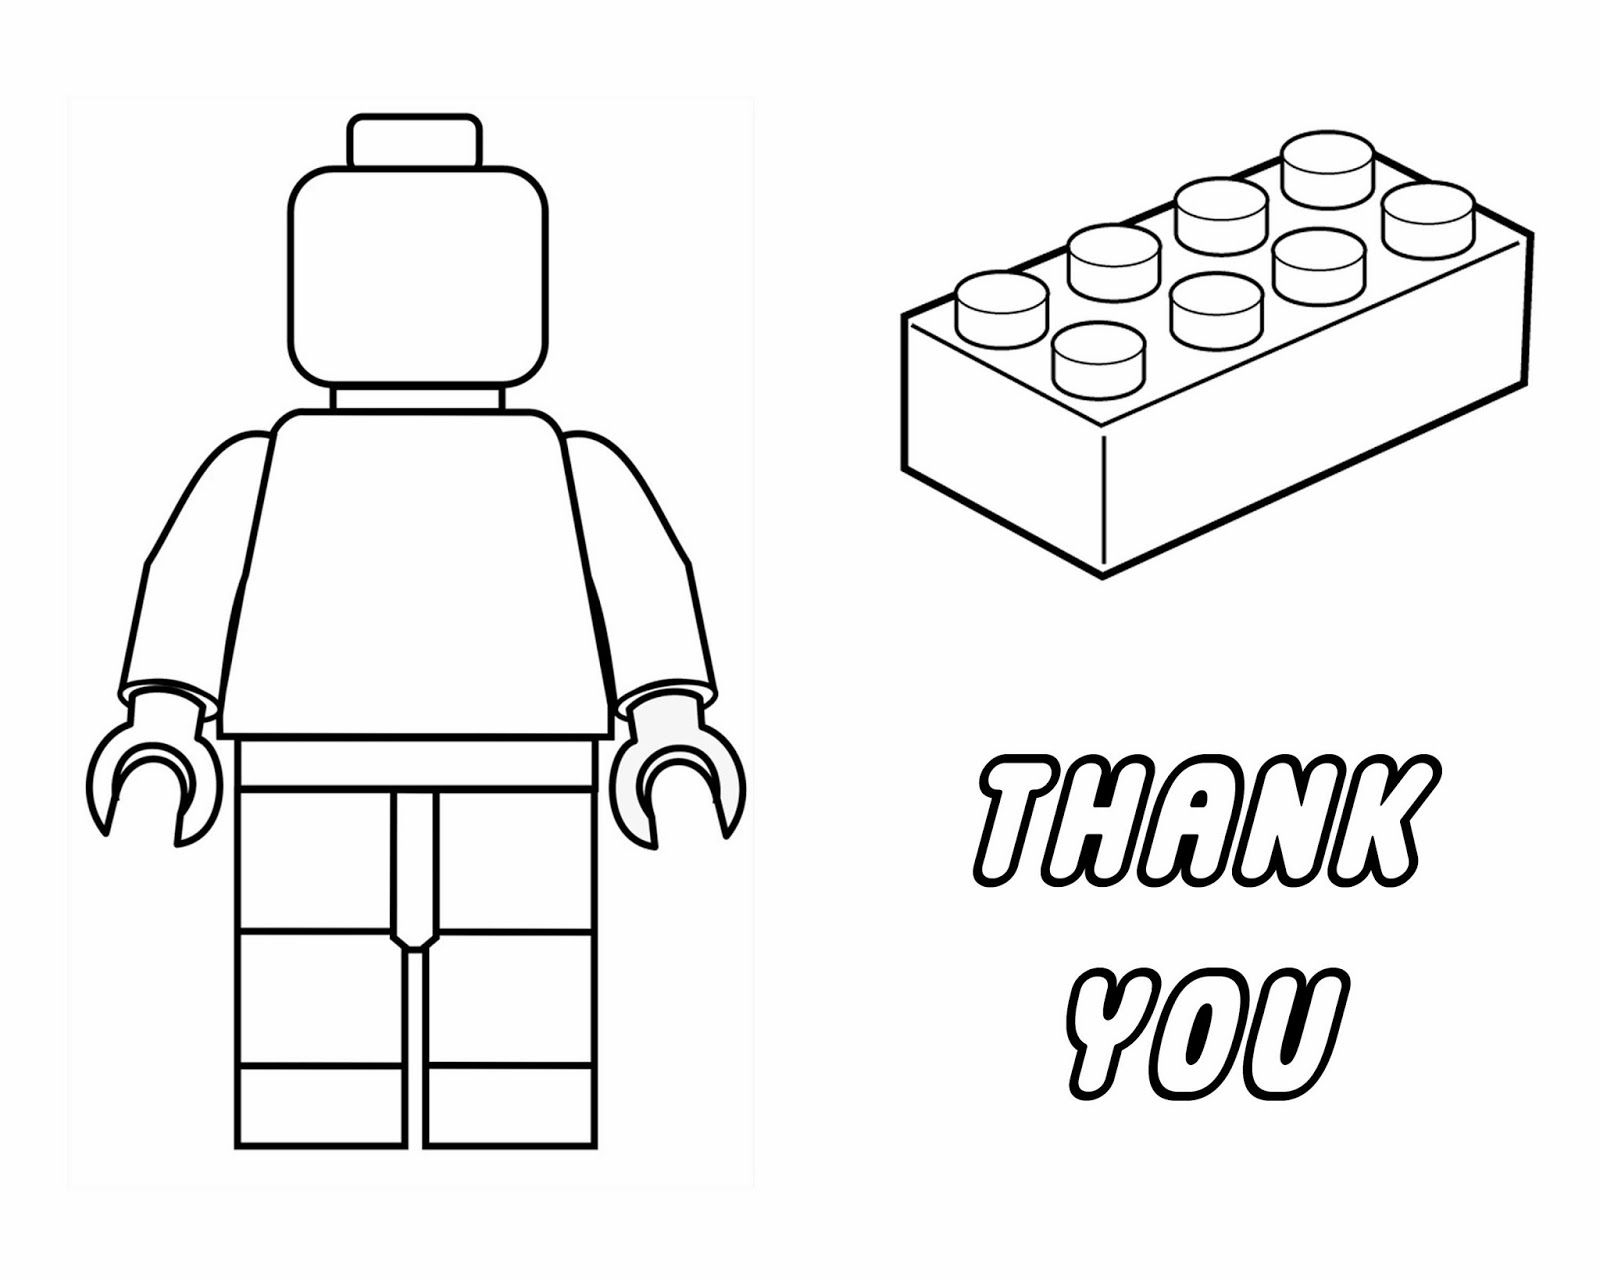 Free Printable Lego Party Https Drive Google Com File D